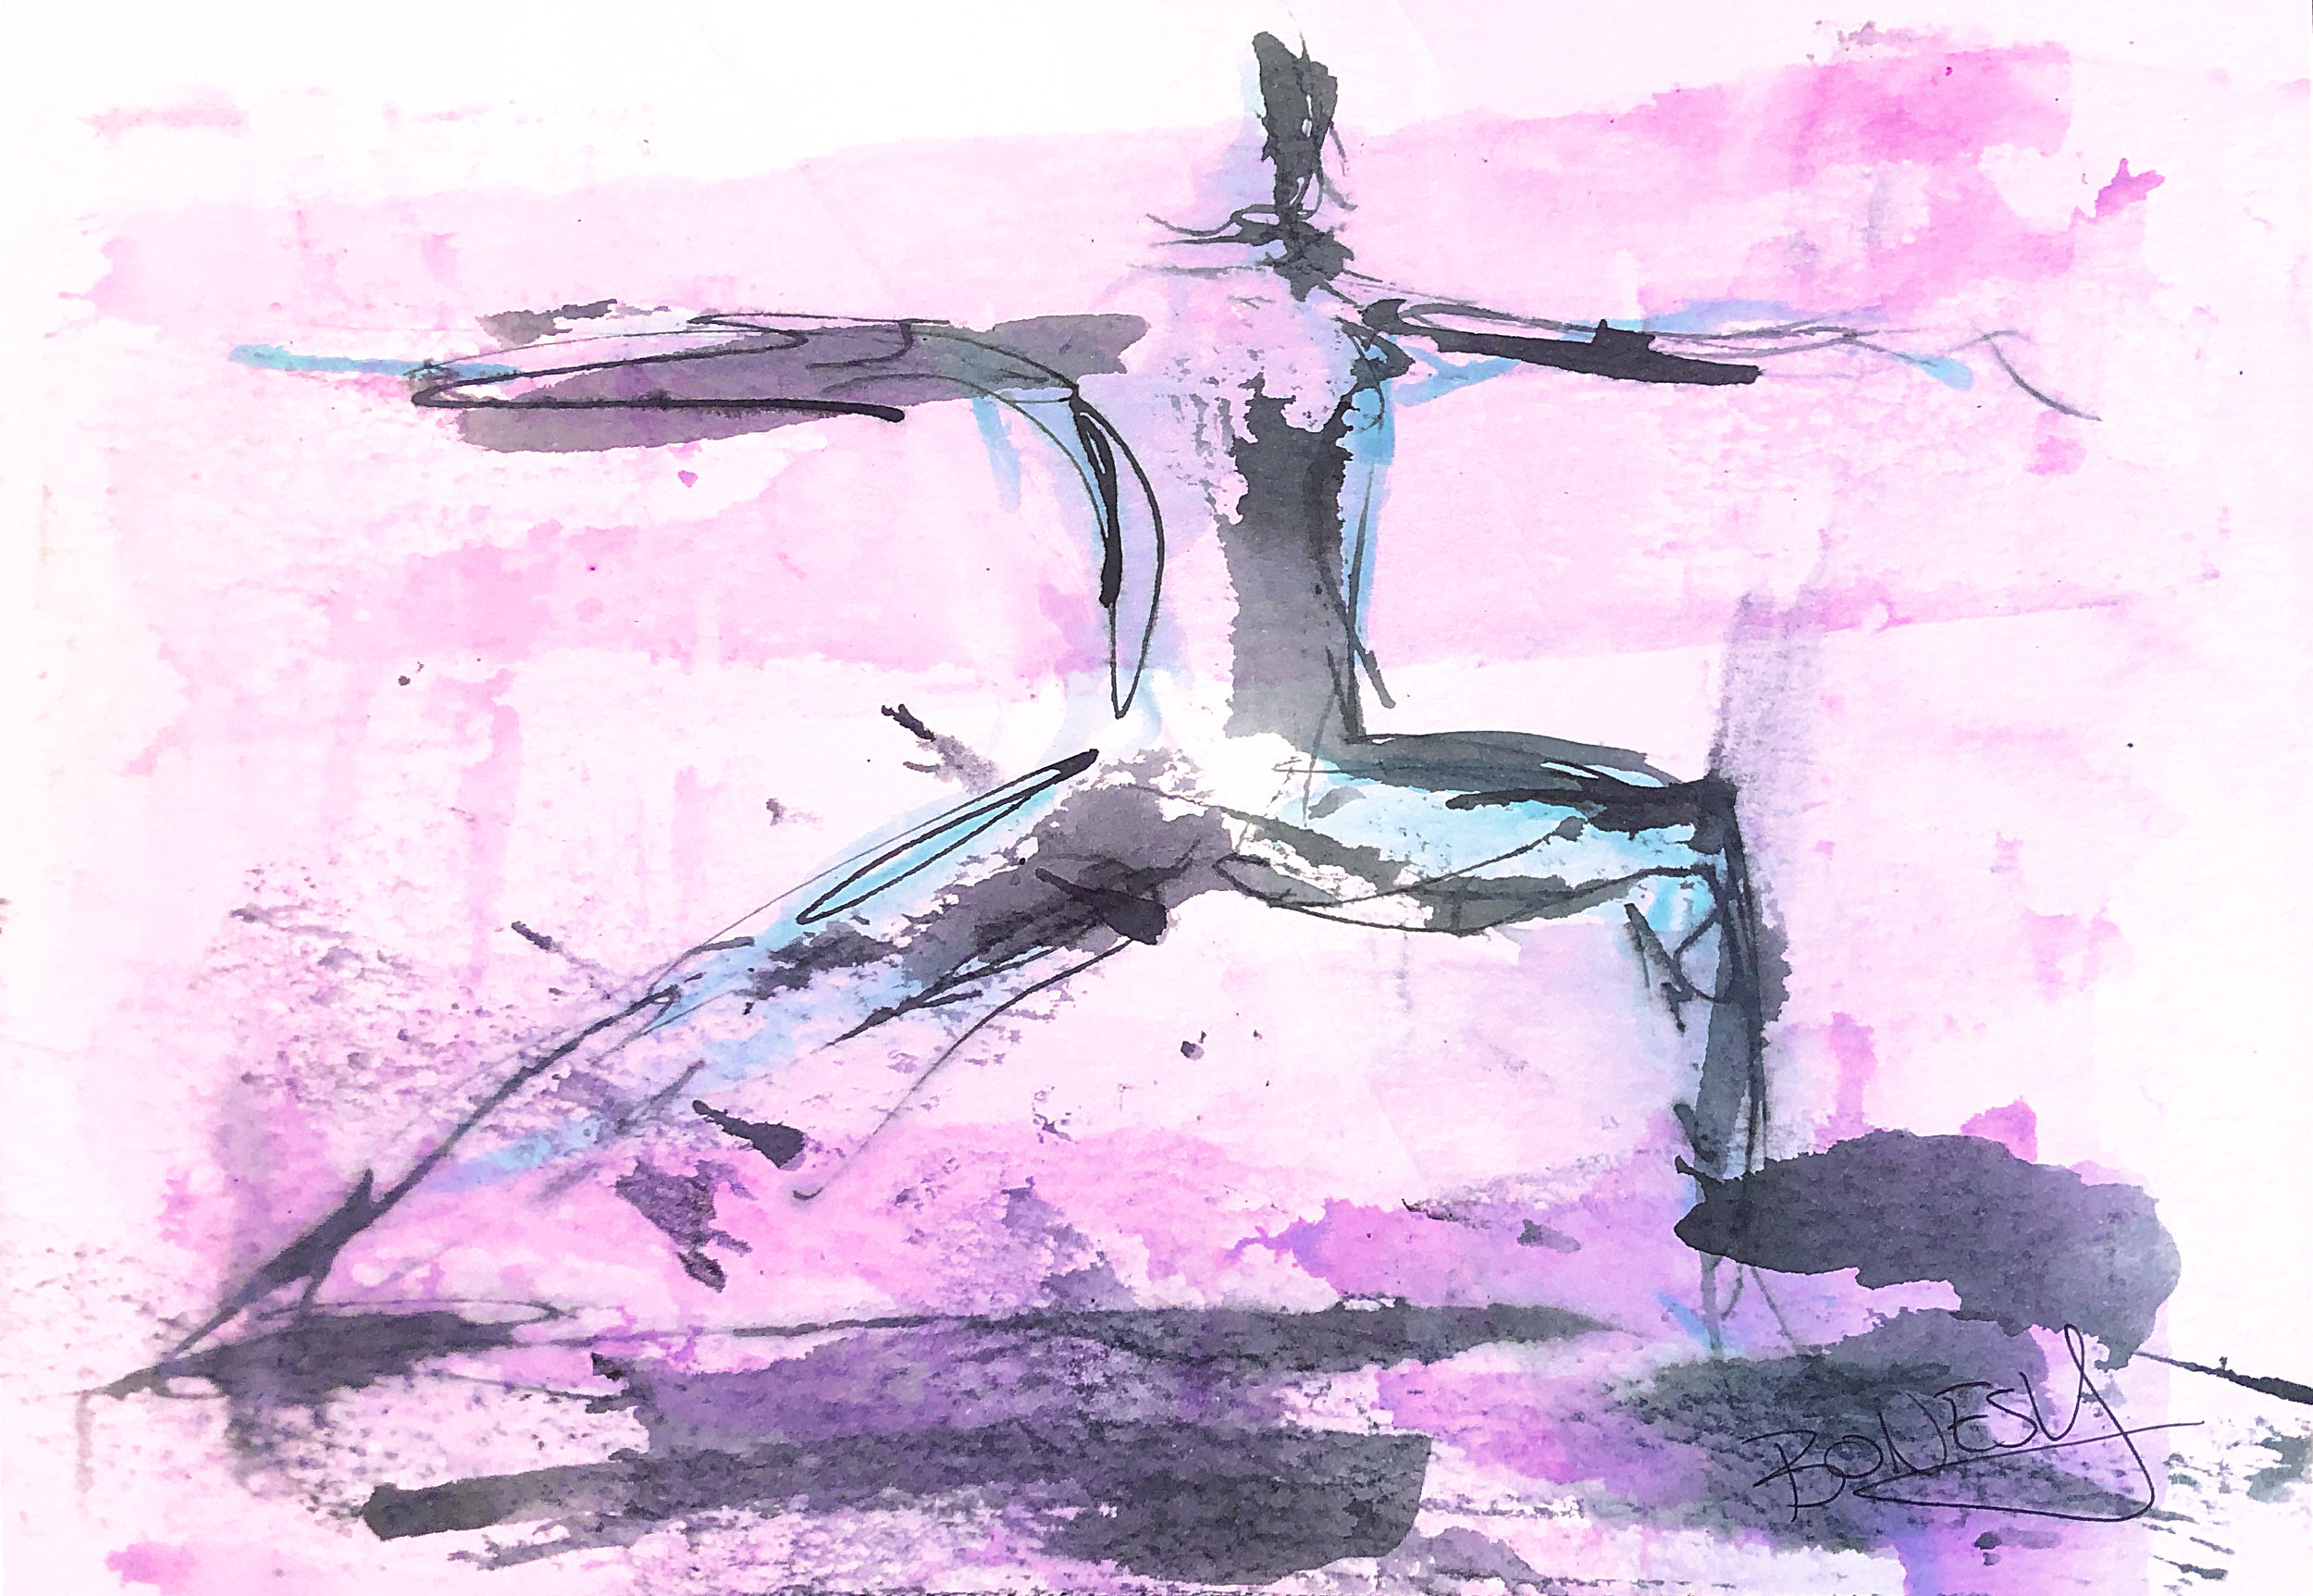 Watercolor on paper, painted with palette knives, yoga pose warrior 2 or virabhadrasana 2.